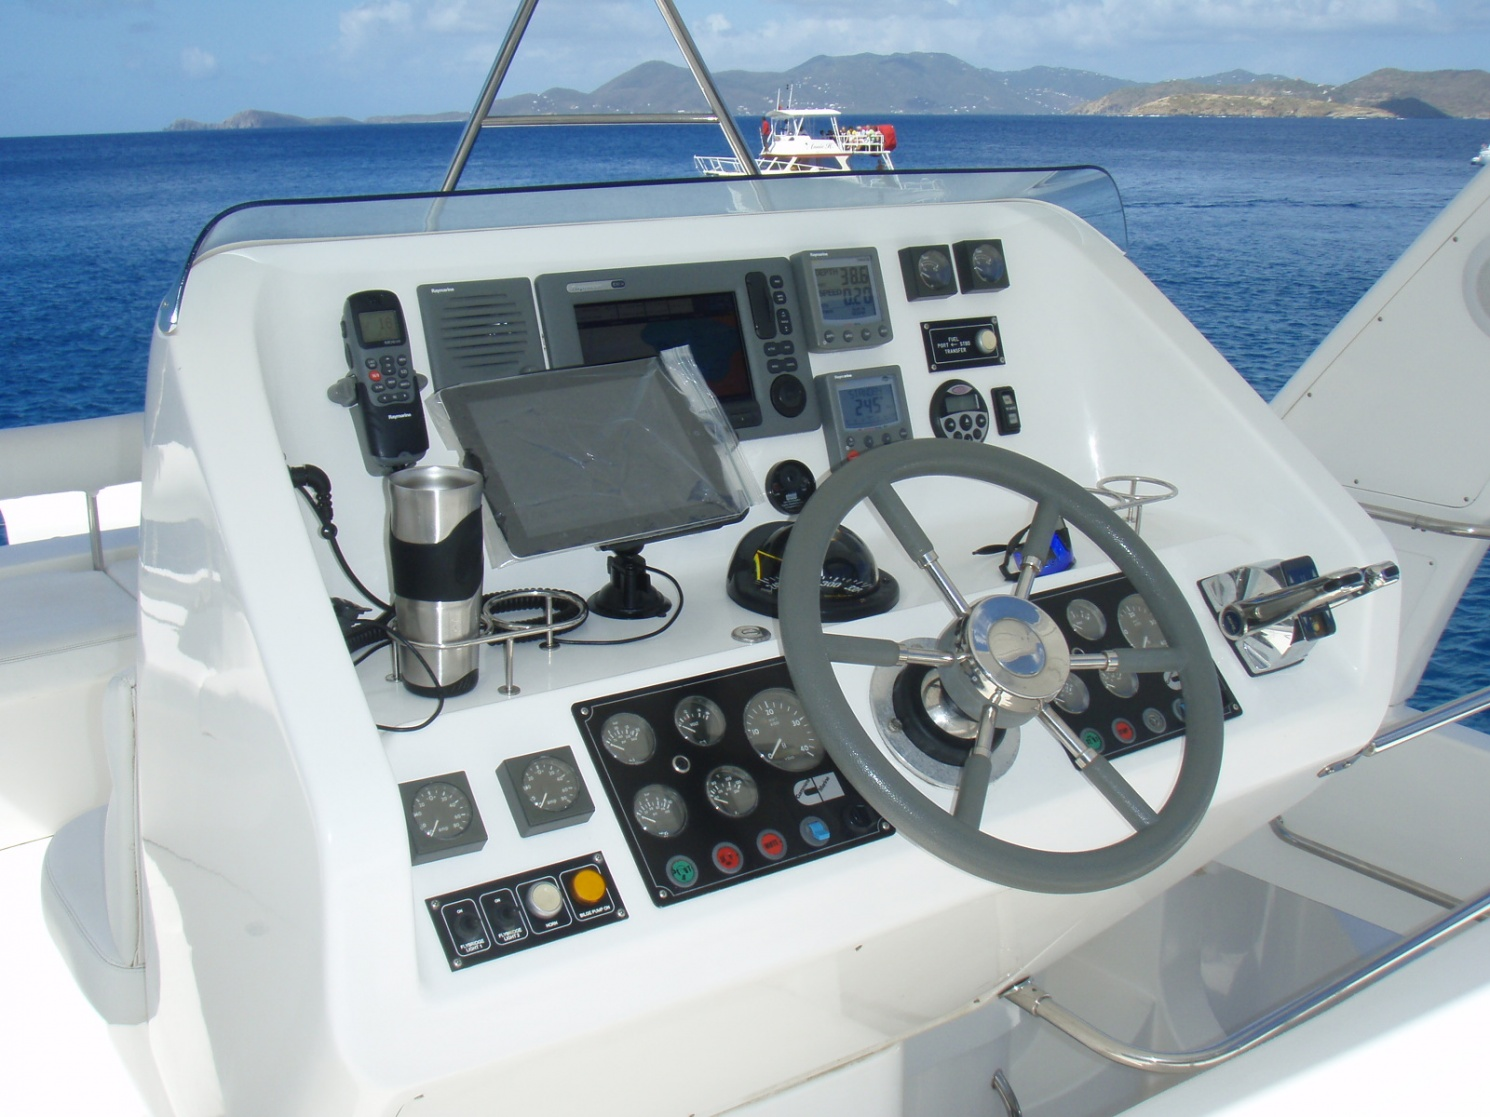 Click image for larger version  Name:iPad_at Helm.jpg Views:443 Size:400.9 KB ID:38471